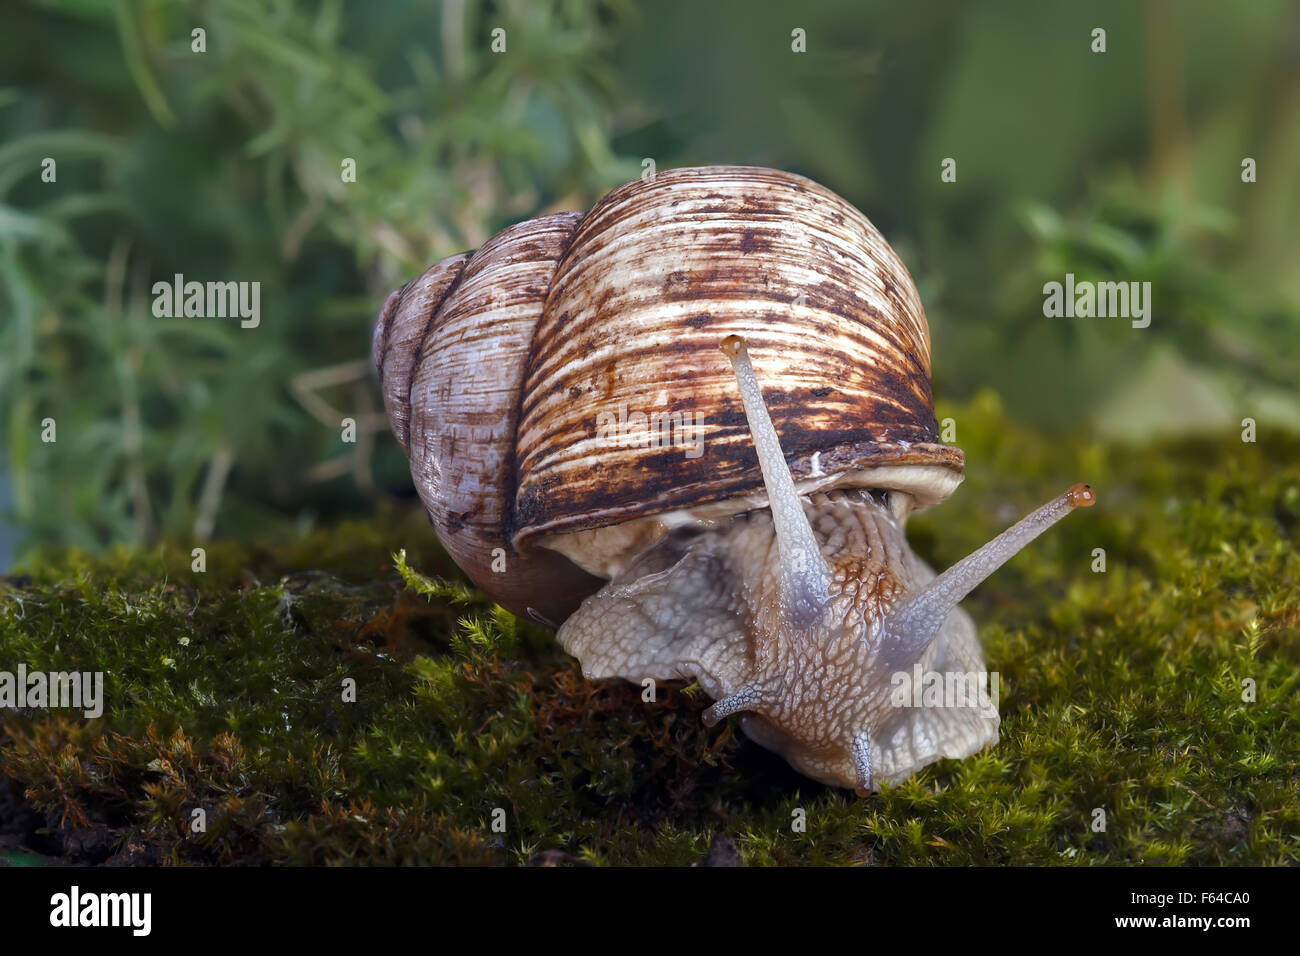 Snail in sphagnum moss. Shallow depth of field, focus on the head of a snail Stock Photo